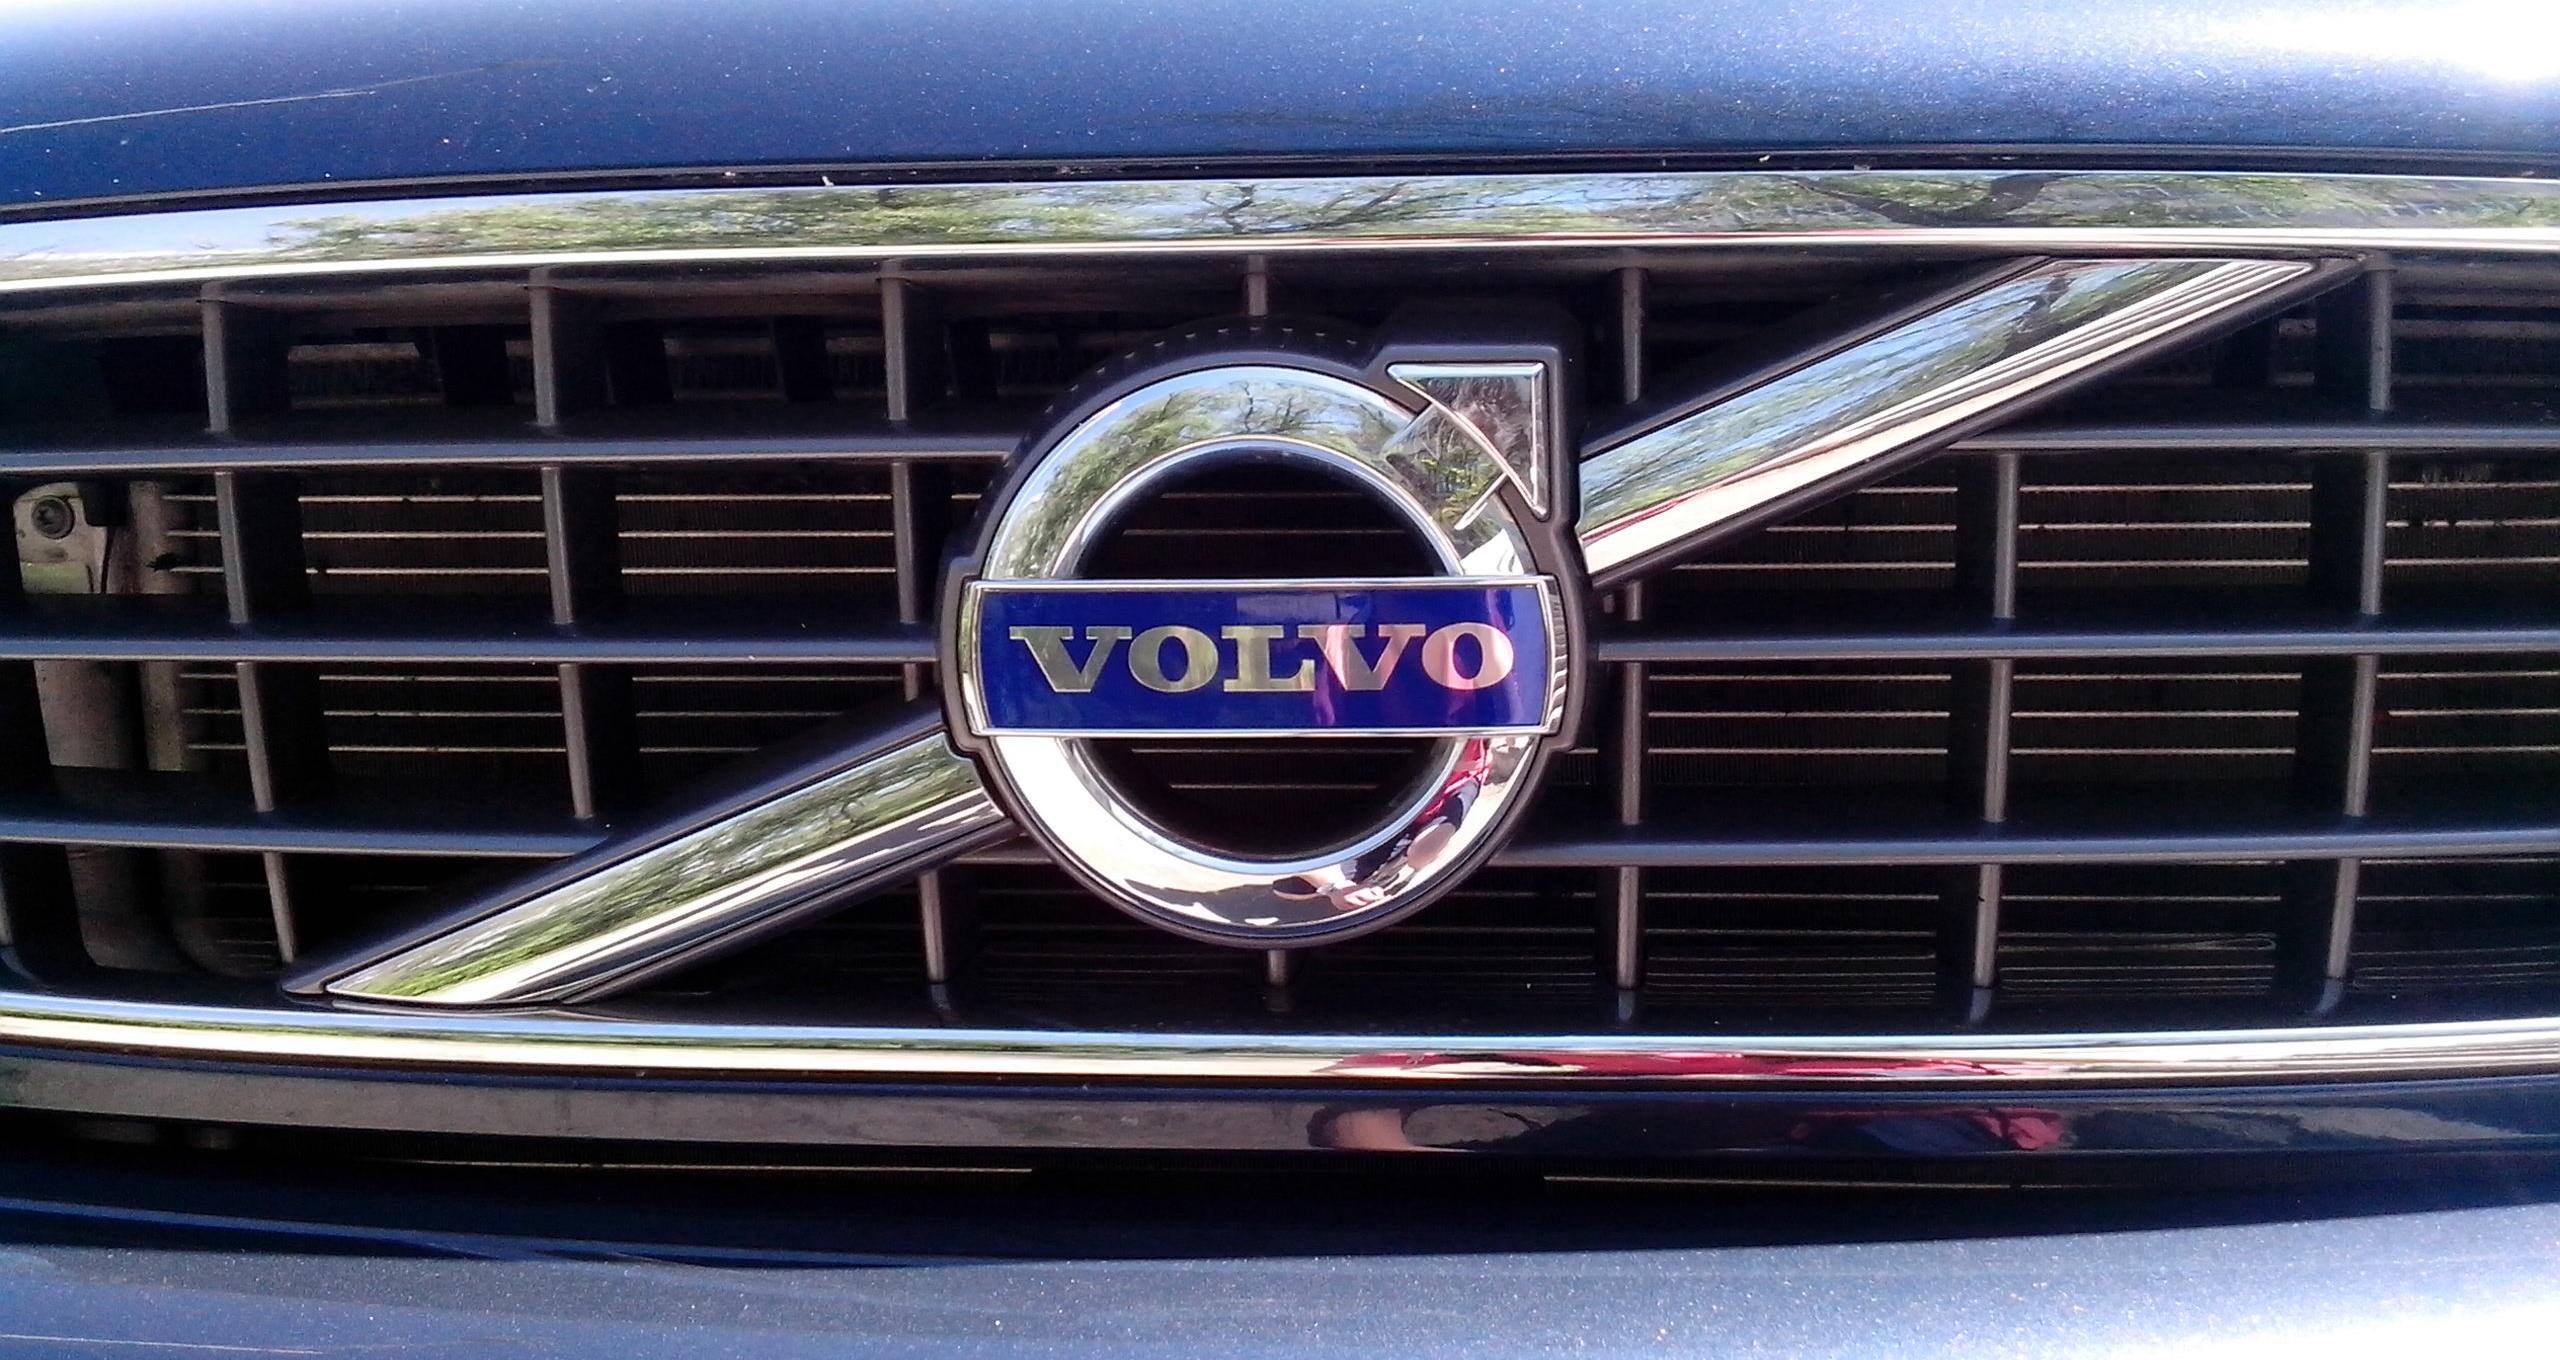 Volvo Logo, Volvo Car Symbol Meaning and History | Car Brand Names.com